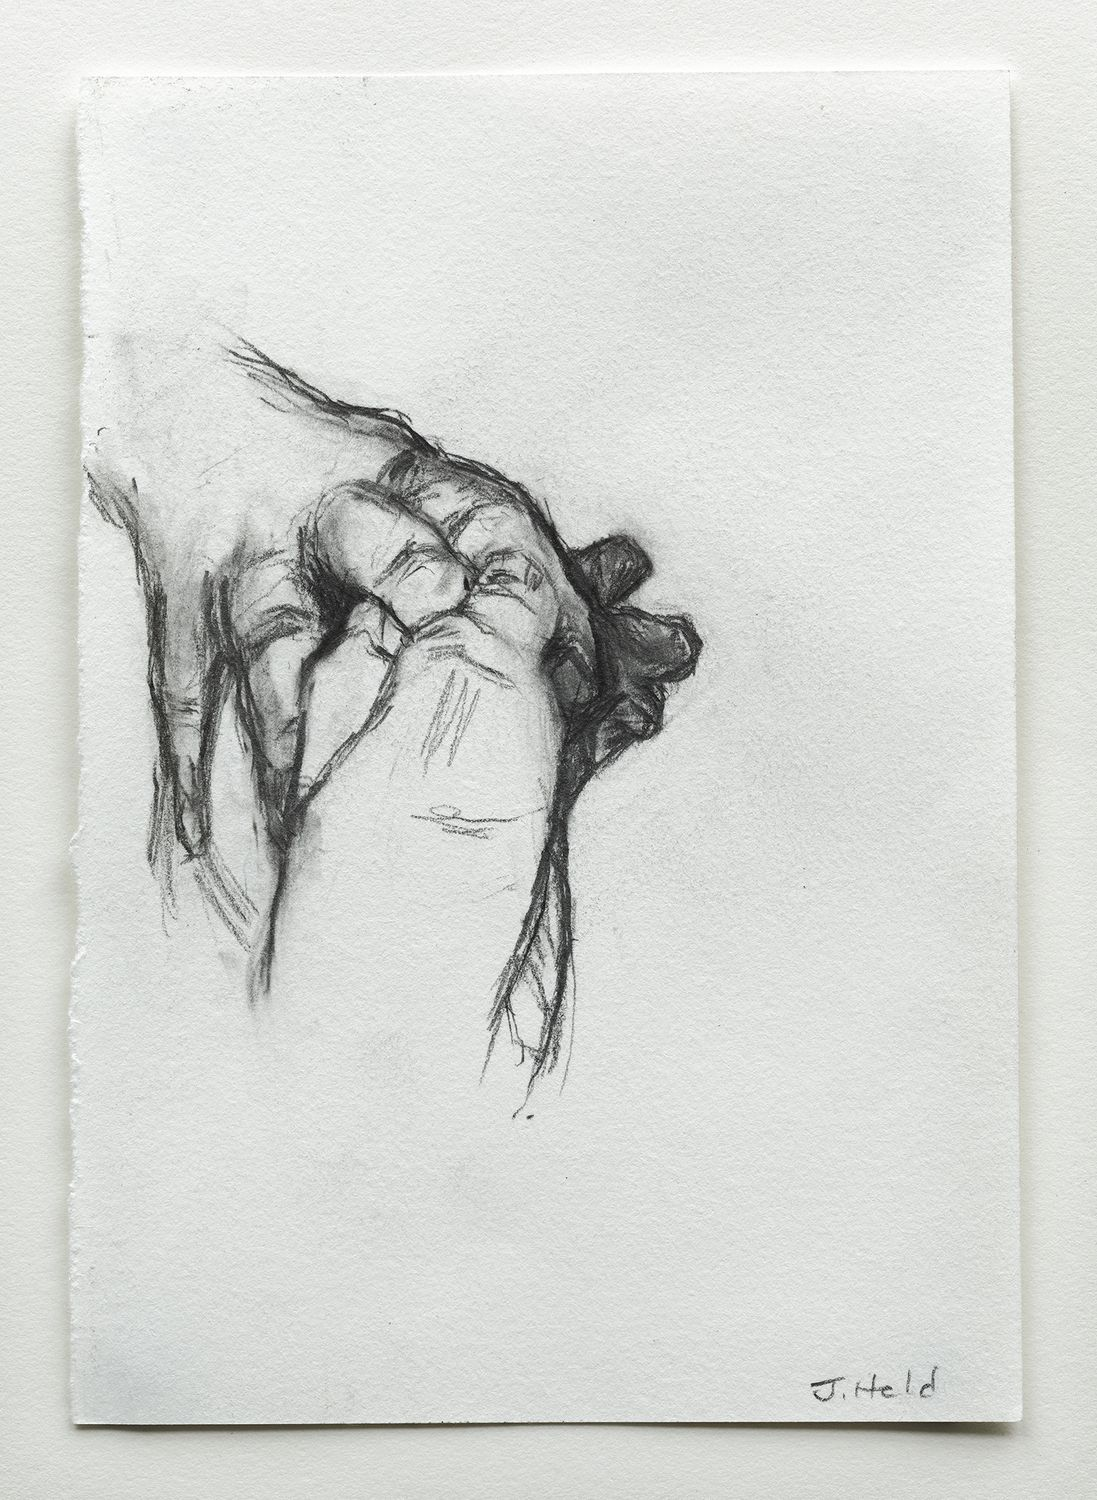 julie held forms of life small drawings exhibition at mercer